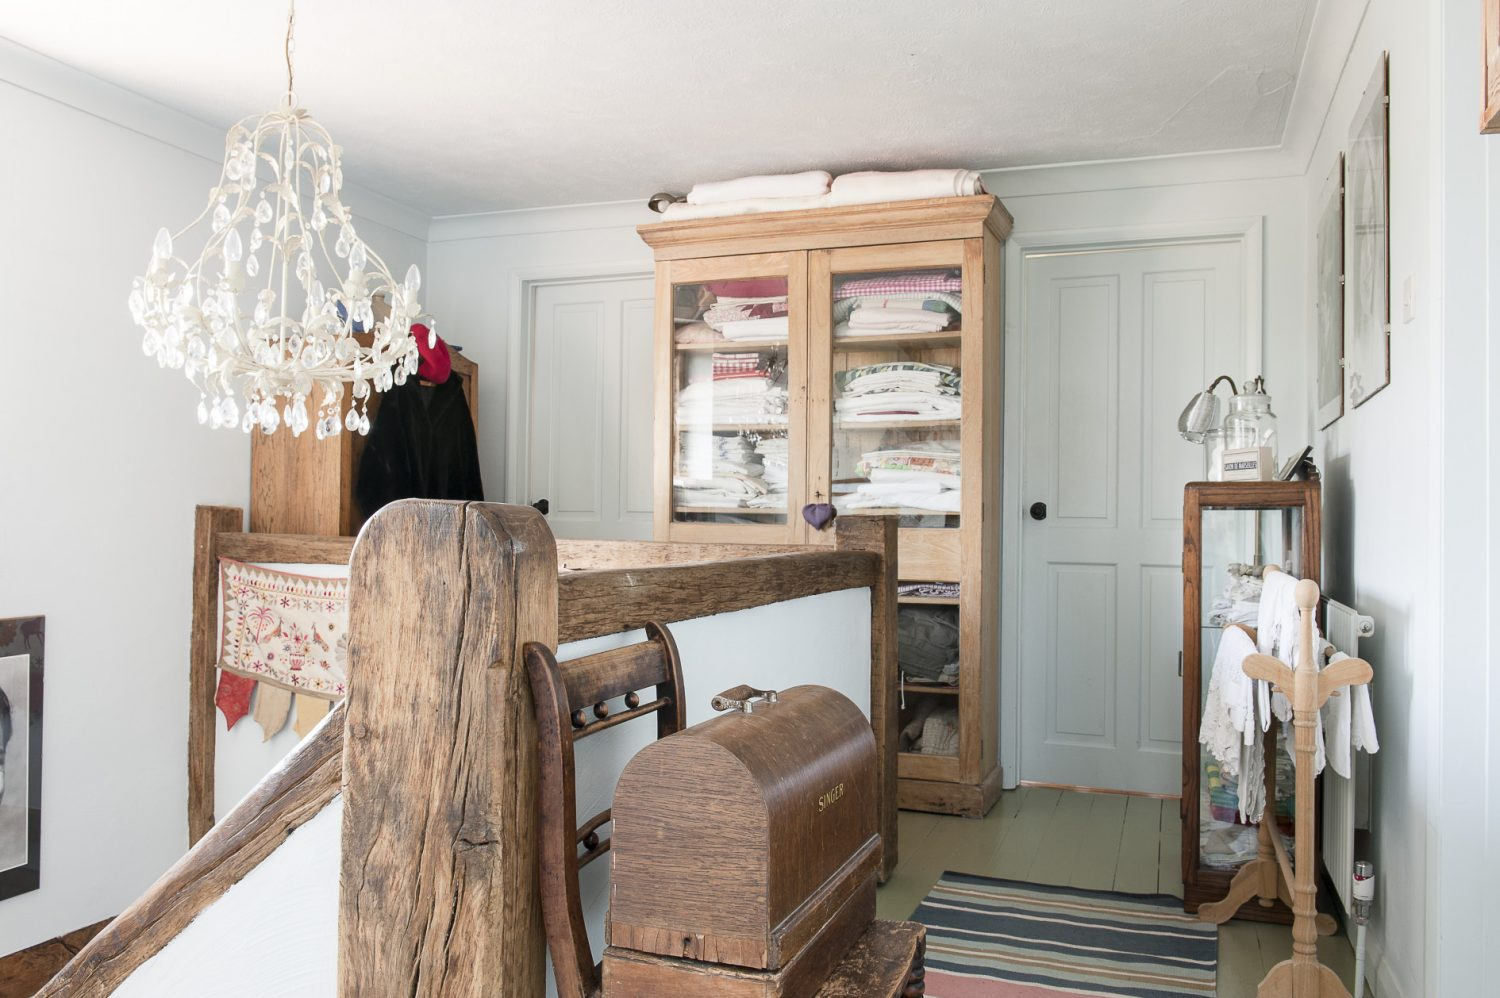 Upstairs, past black and white family photos – just a few of many of the generations past and present on walls upstairs and down – is yet another example of the effective display of possessions that most of us might keep shut away...